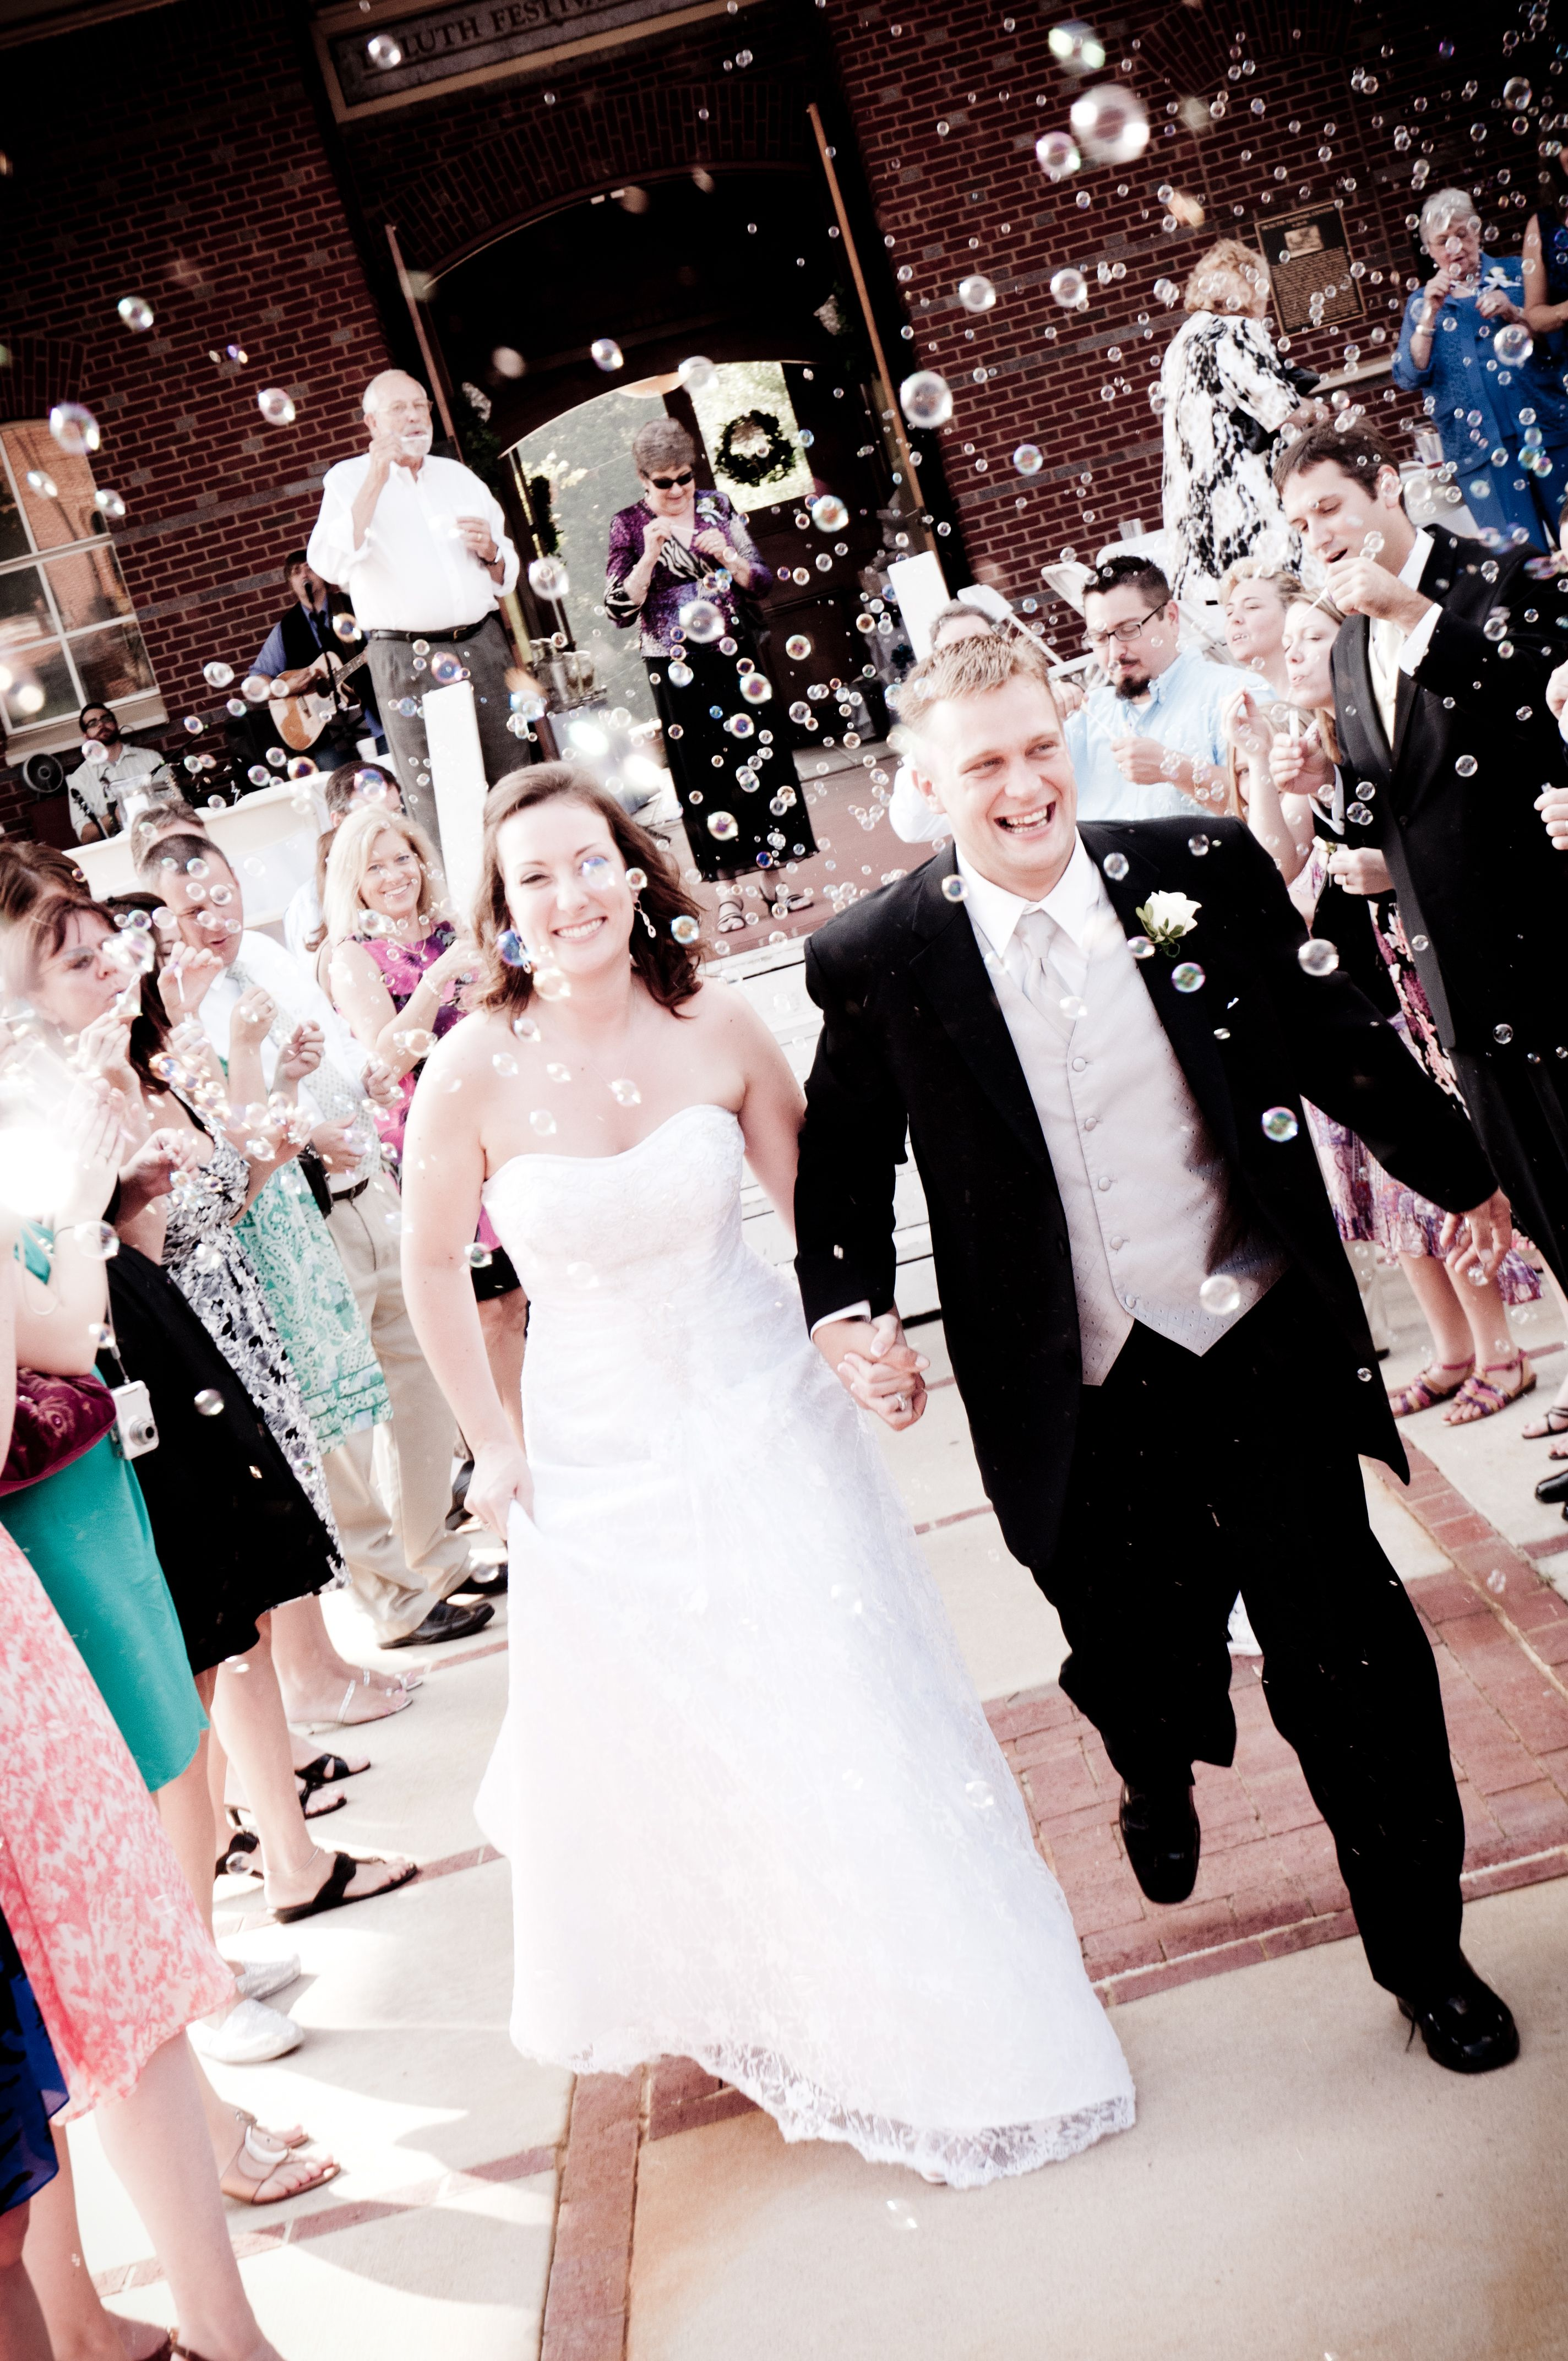 A send off with bubbles!! wedding newlyweds